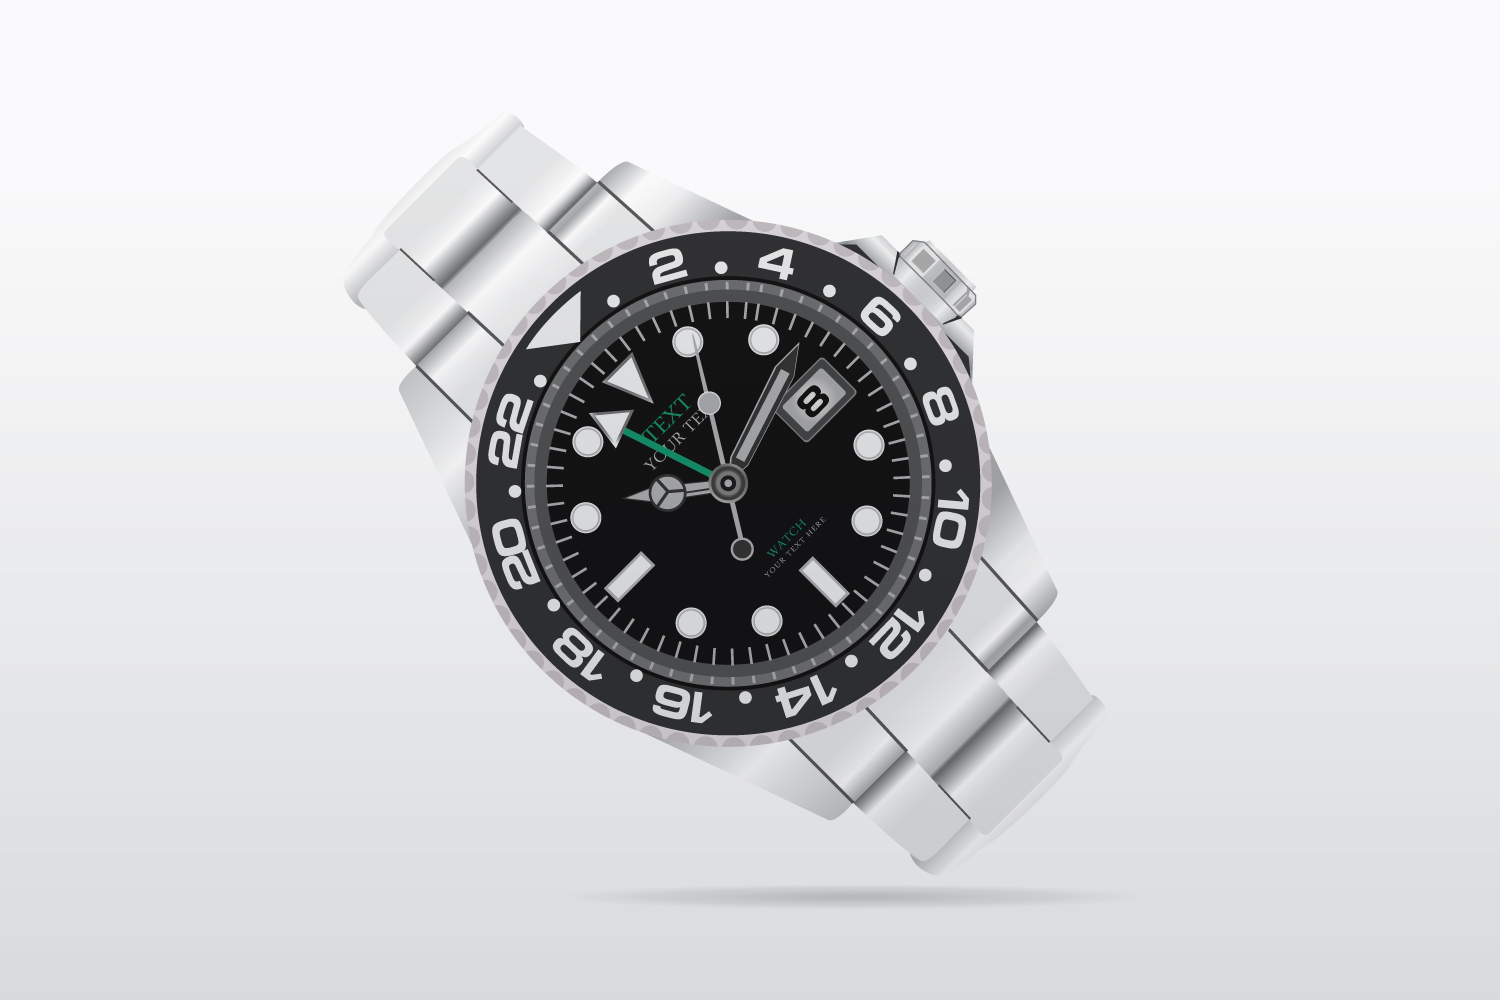 Wrist Watch vector illustration example image 2